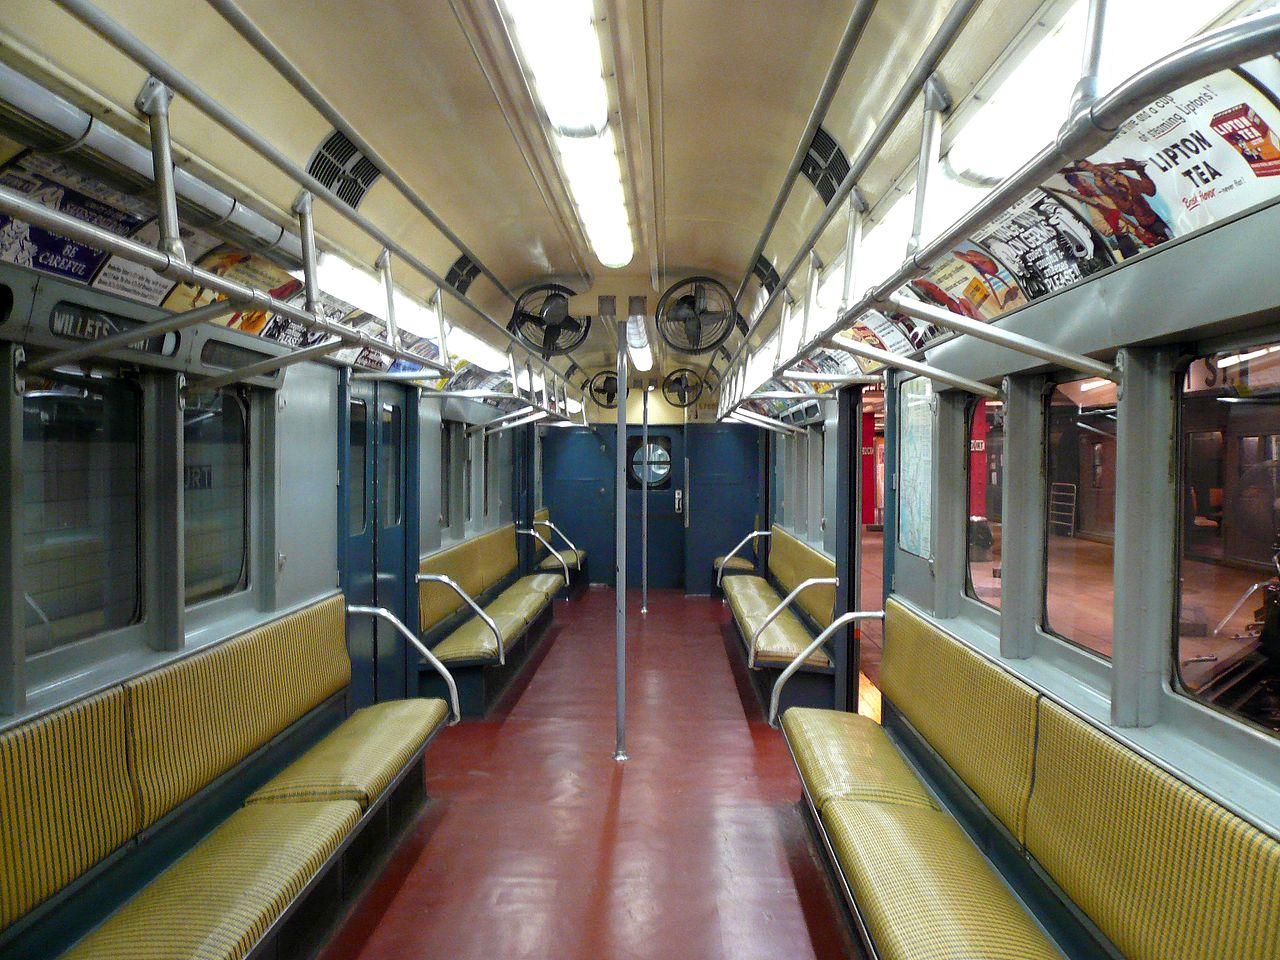 file r12 irt subway car wikimedia commons. Black Bedroom Furniture Sets. Home Design Ideas